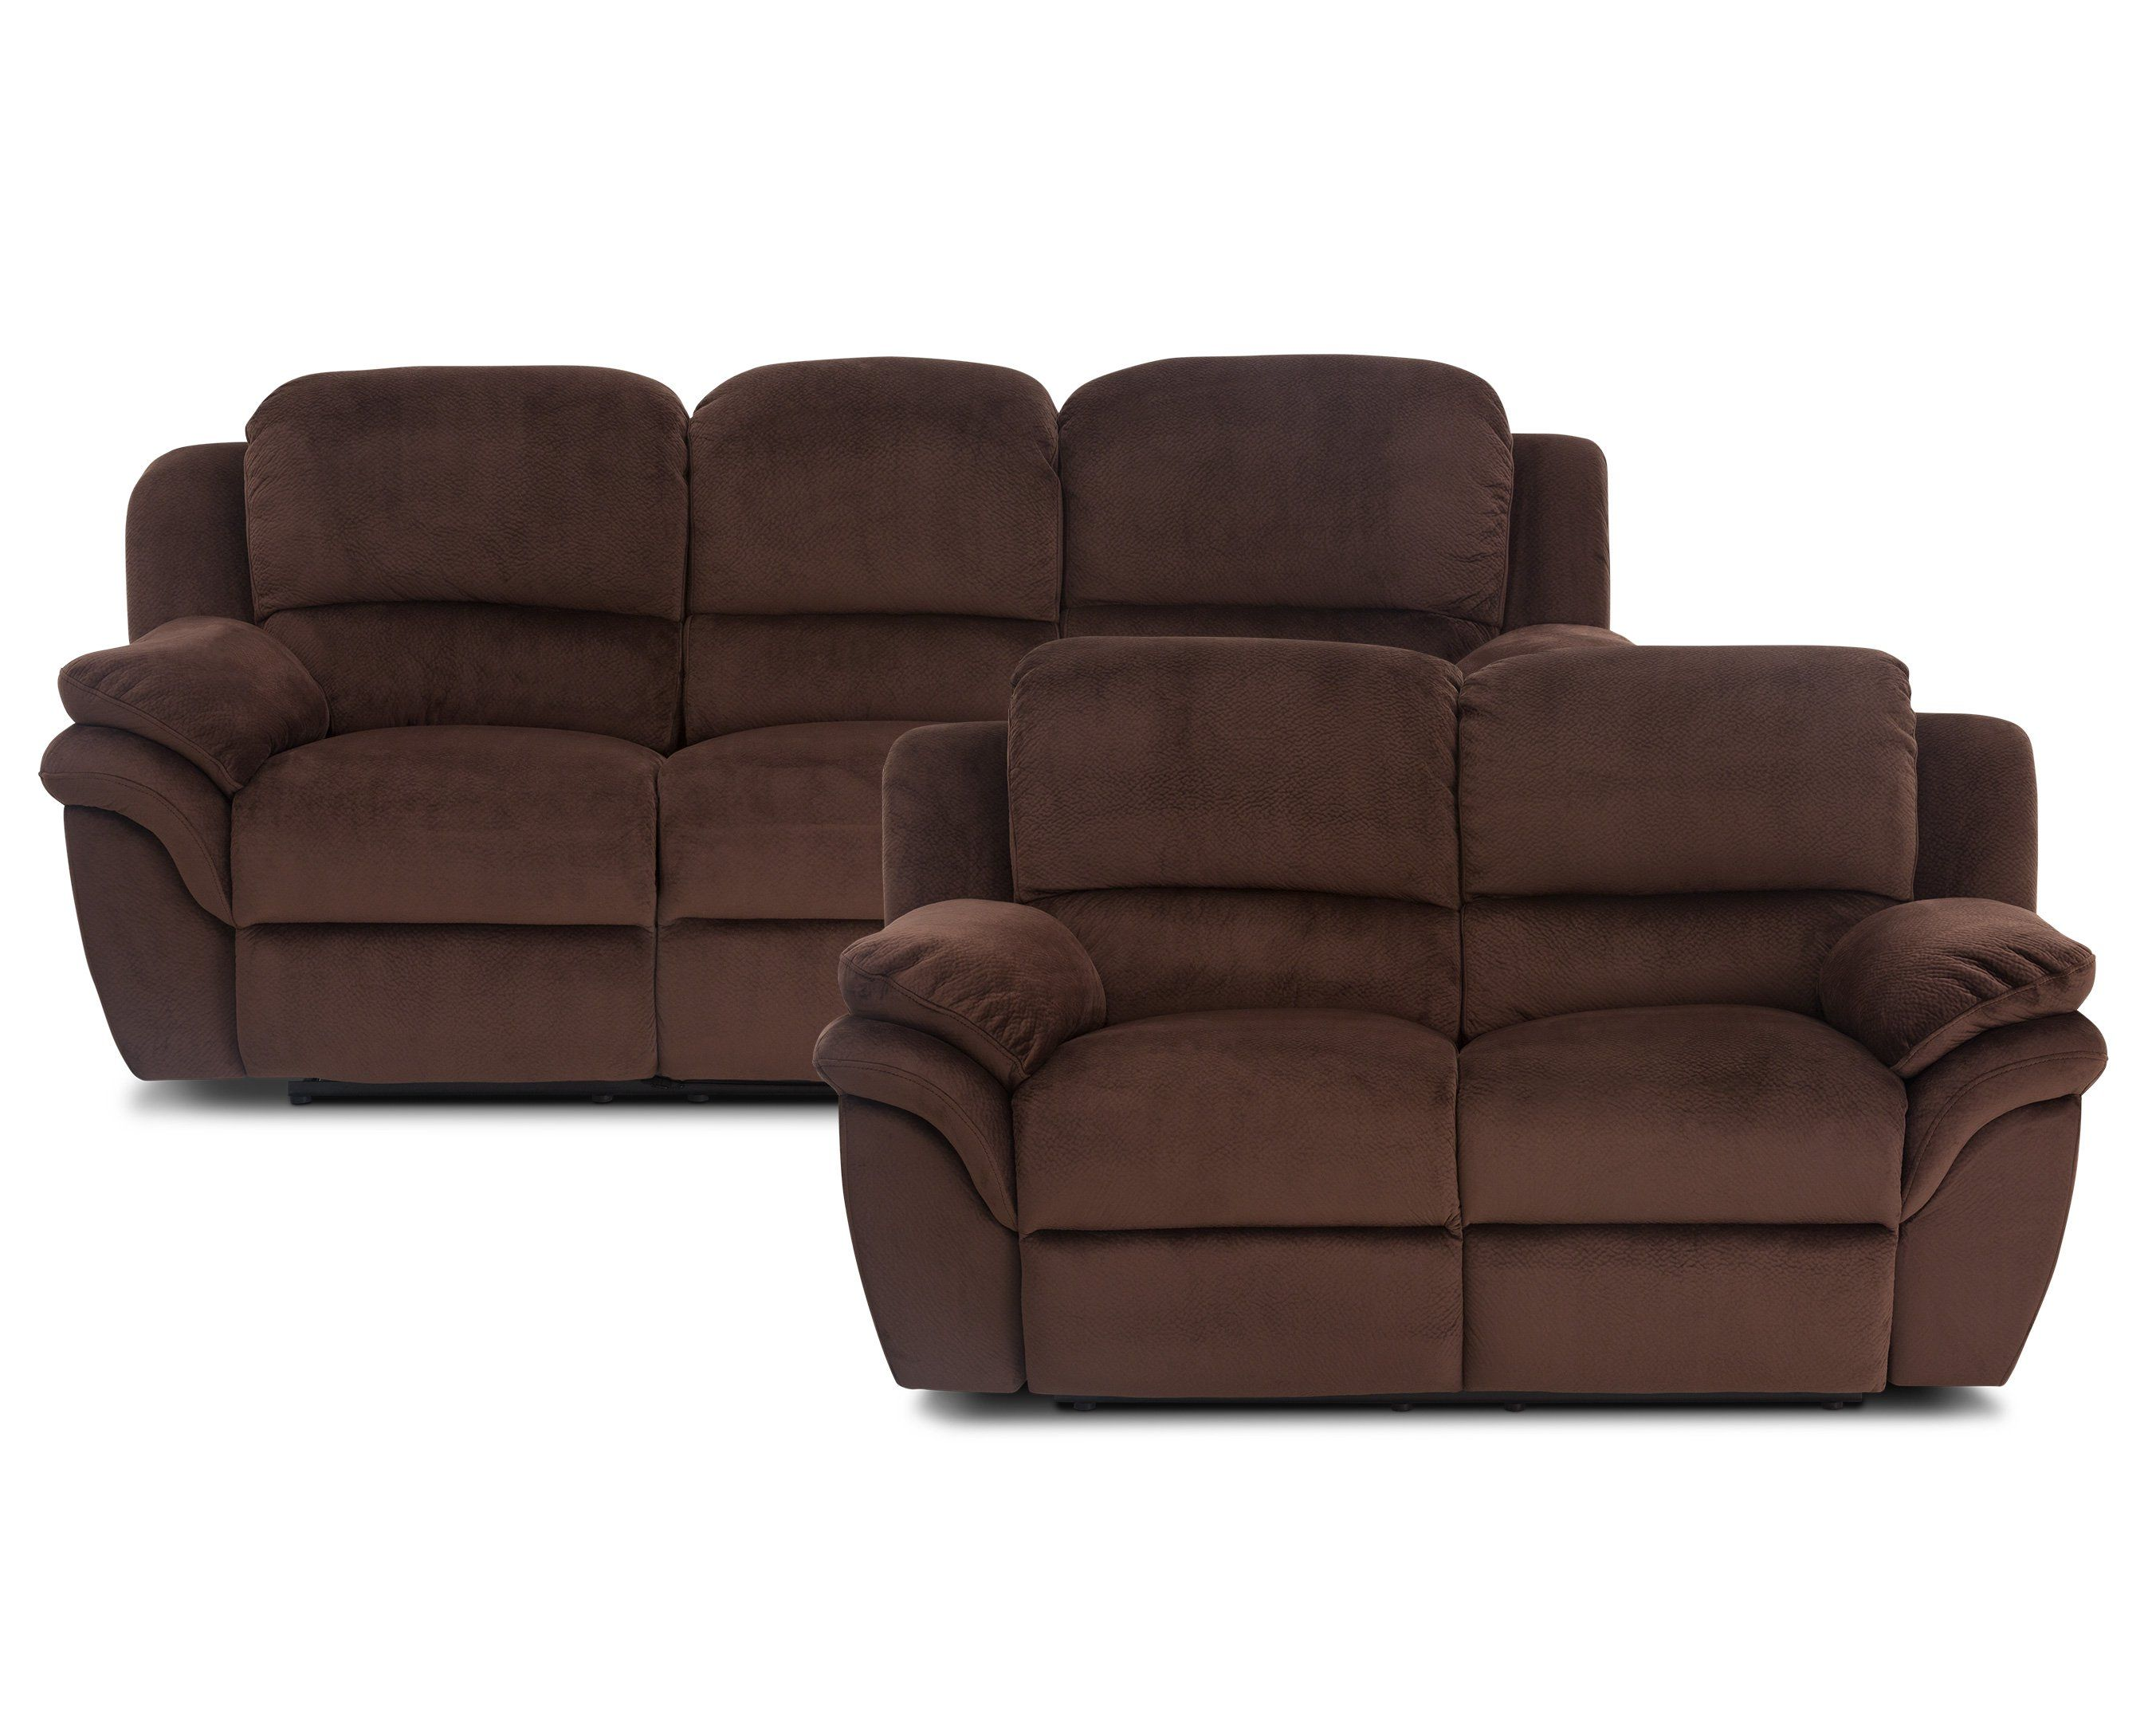 Livingston 2 Pc. Sectional Furniture Row Power